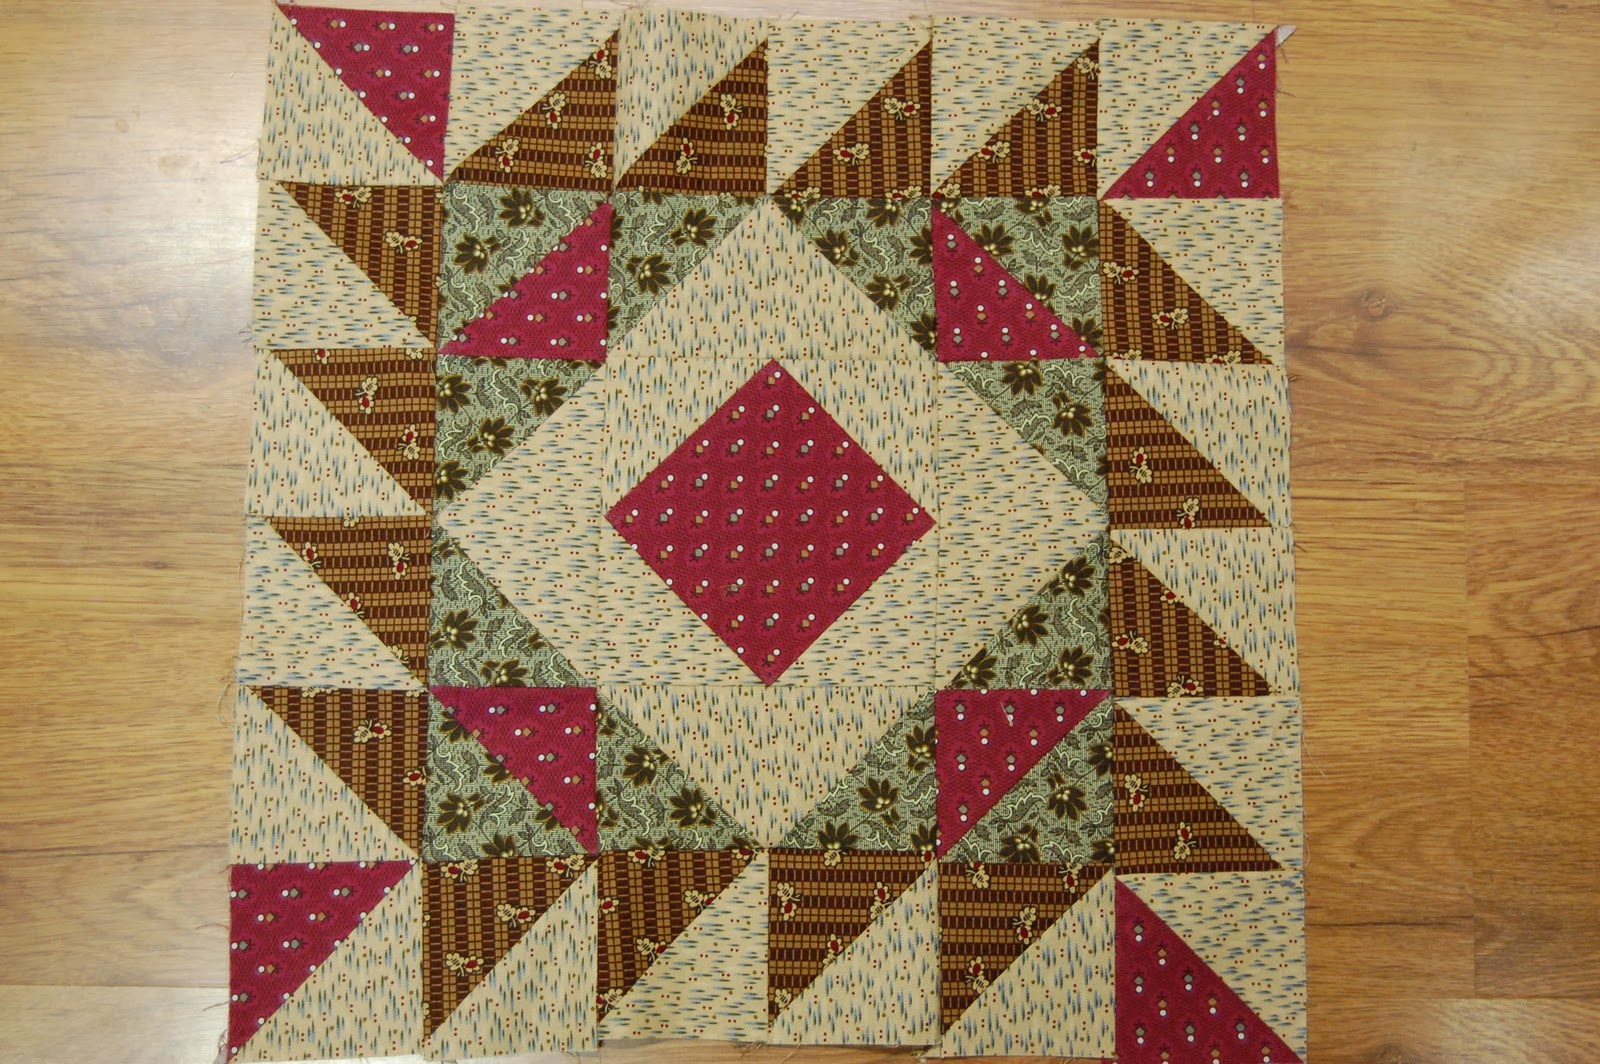 Piketpaaltjes Gamma Between The Fenceposts My Civil War Quilt Month Two